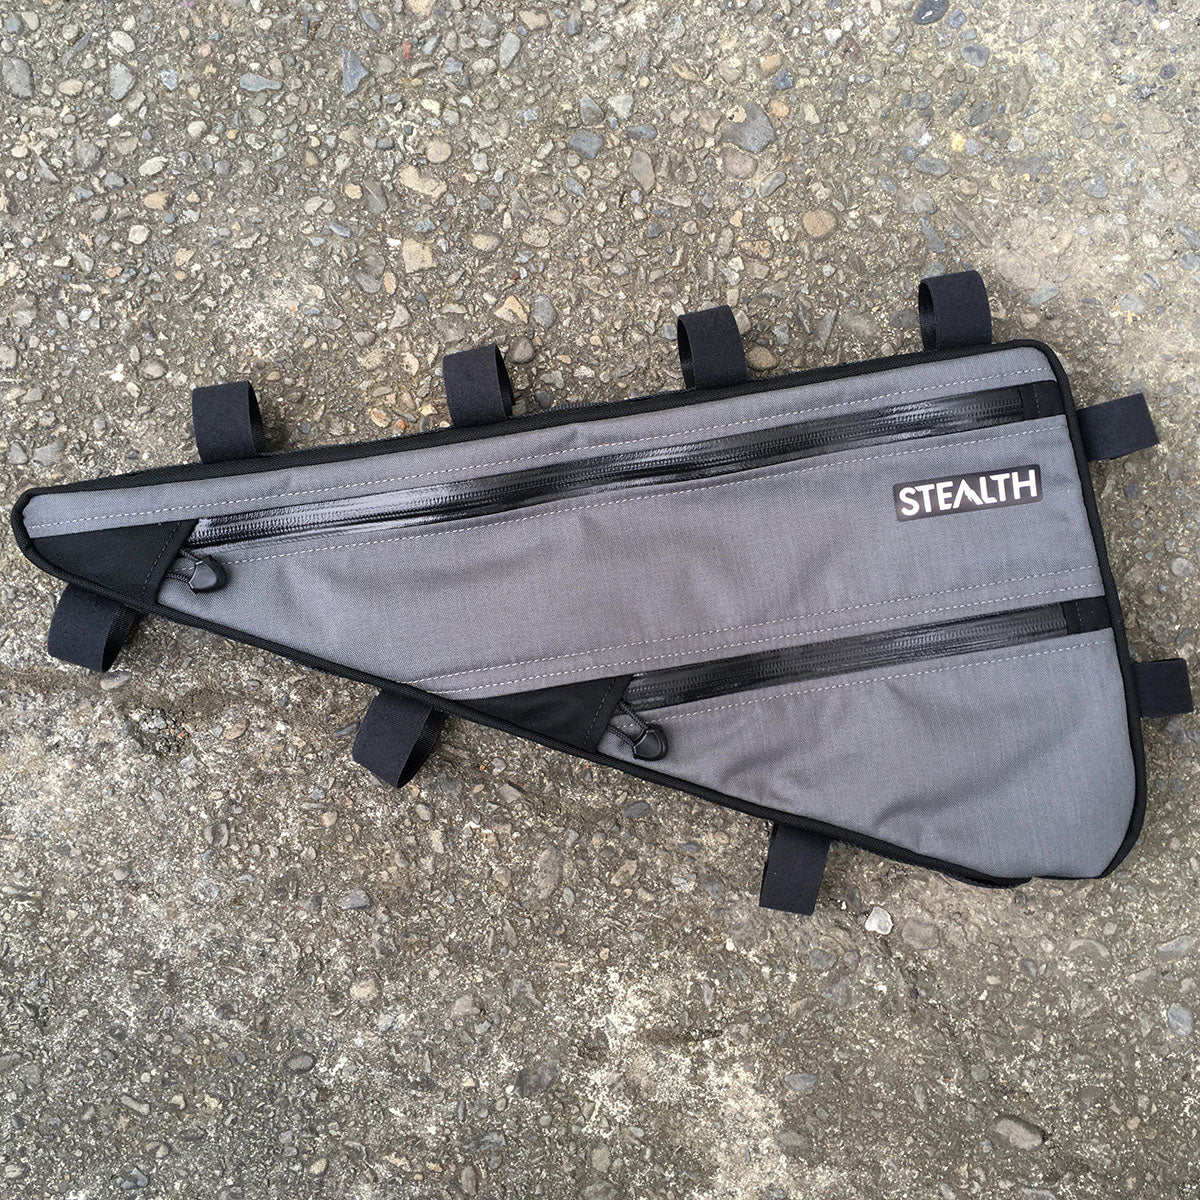 Custom grey frame bag for bike packing